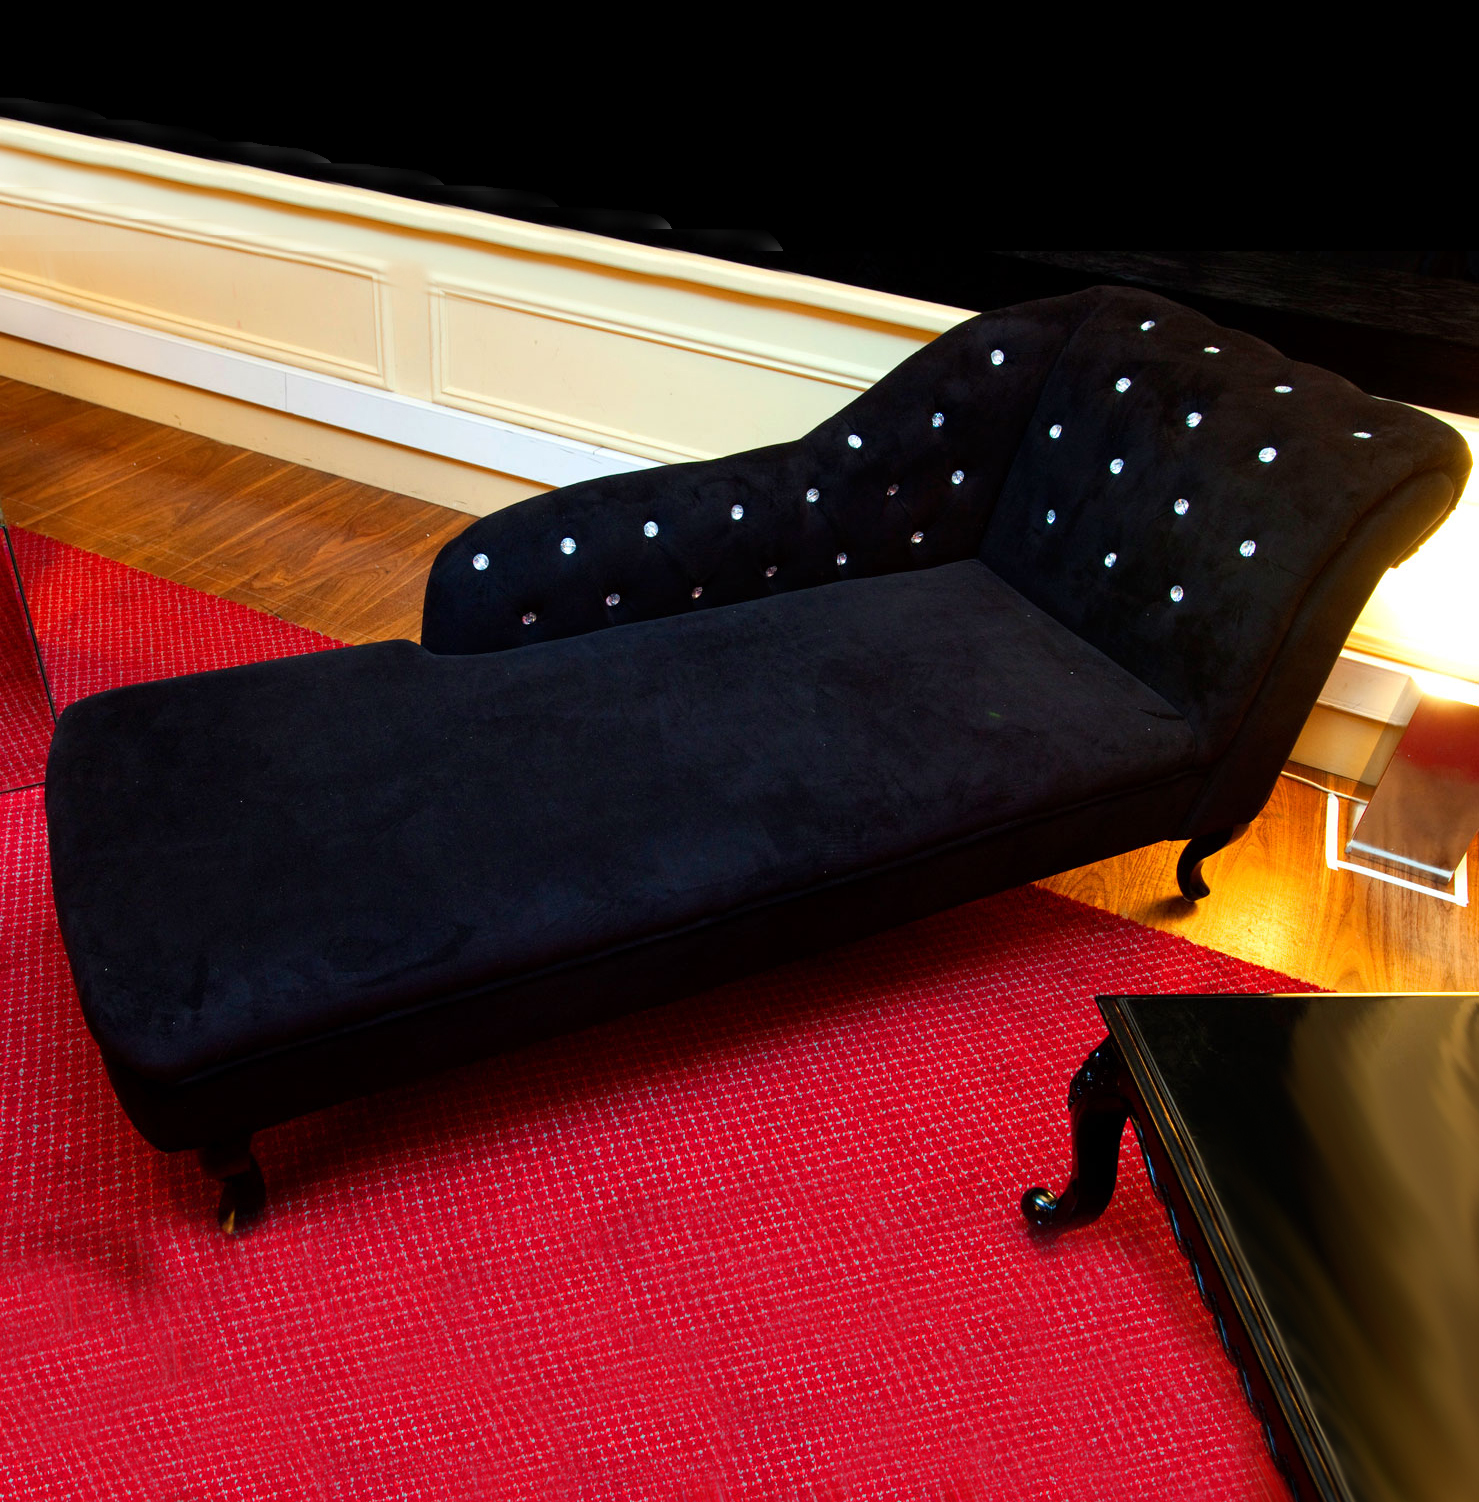 Black velvet chaise lounge ten and a half thousand for Chaise longue hire